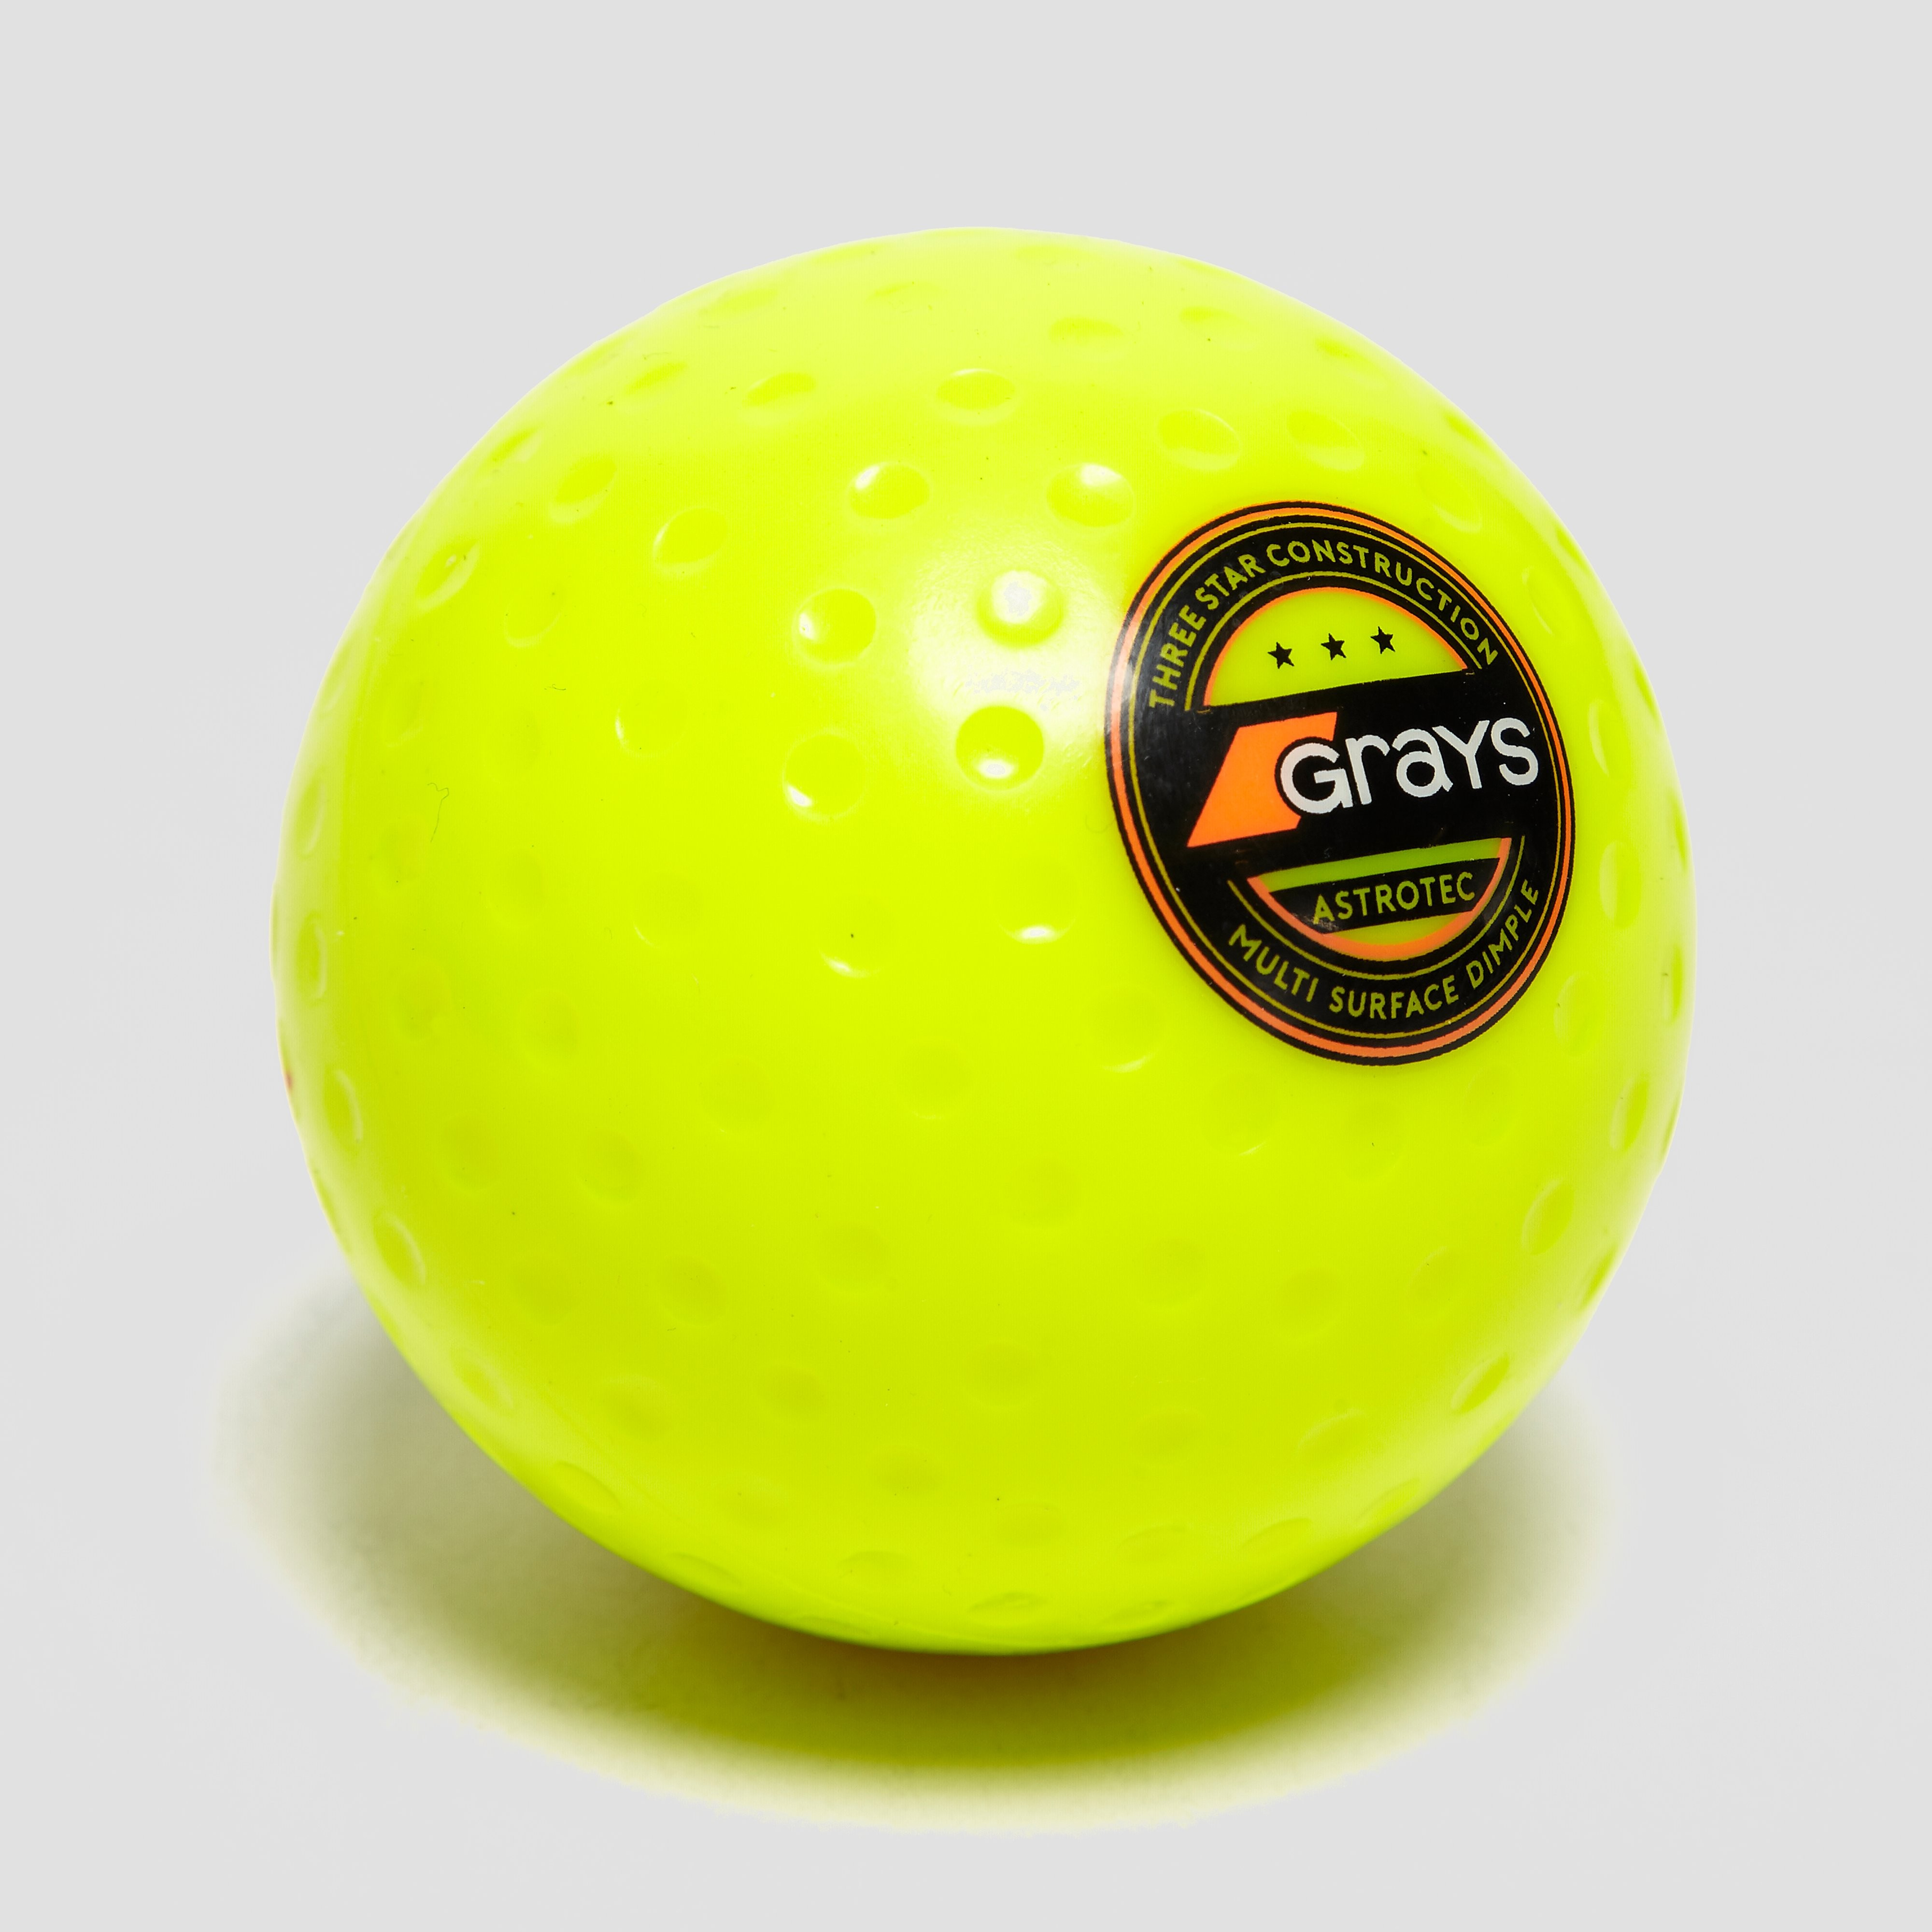 Grays Astrotec Hockey Ball